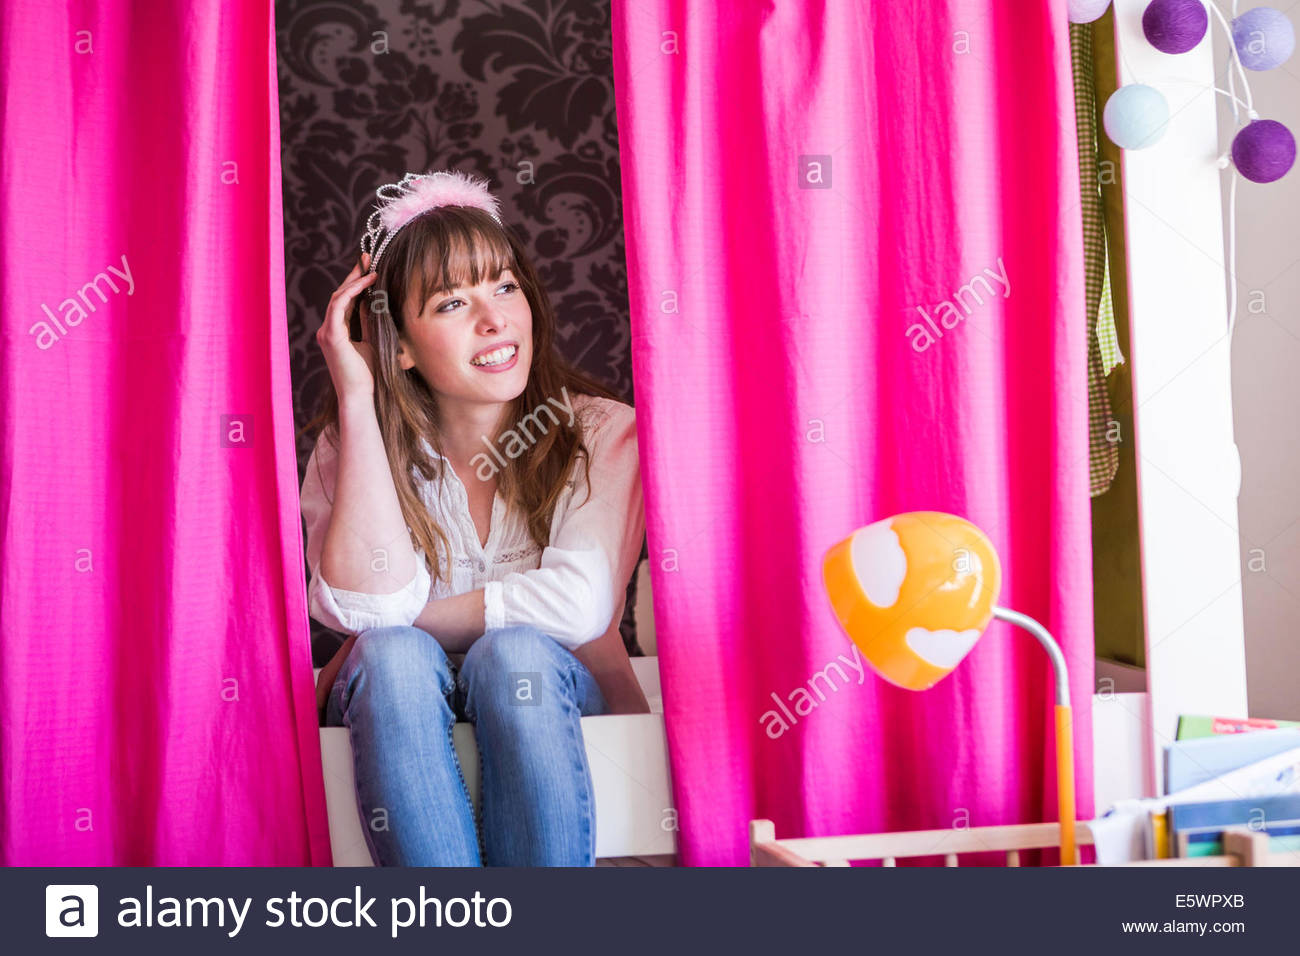 Woman with fluffy hairband sitting between pink curtains - Stock Image